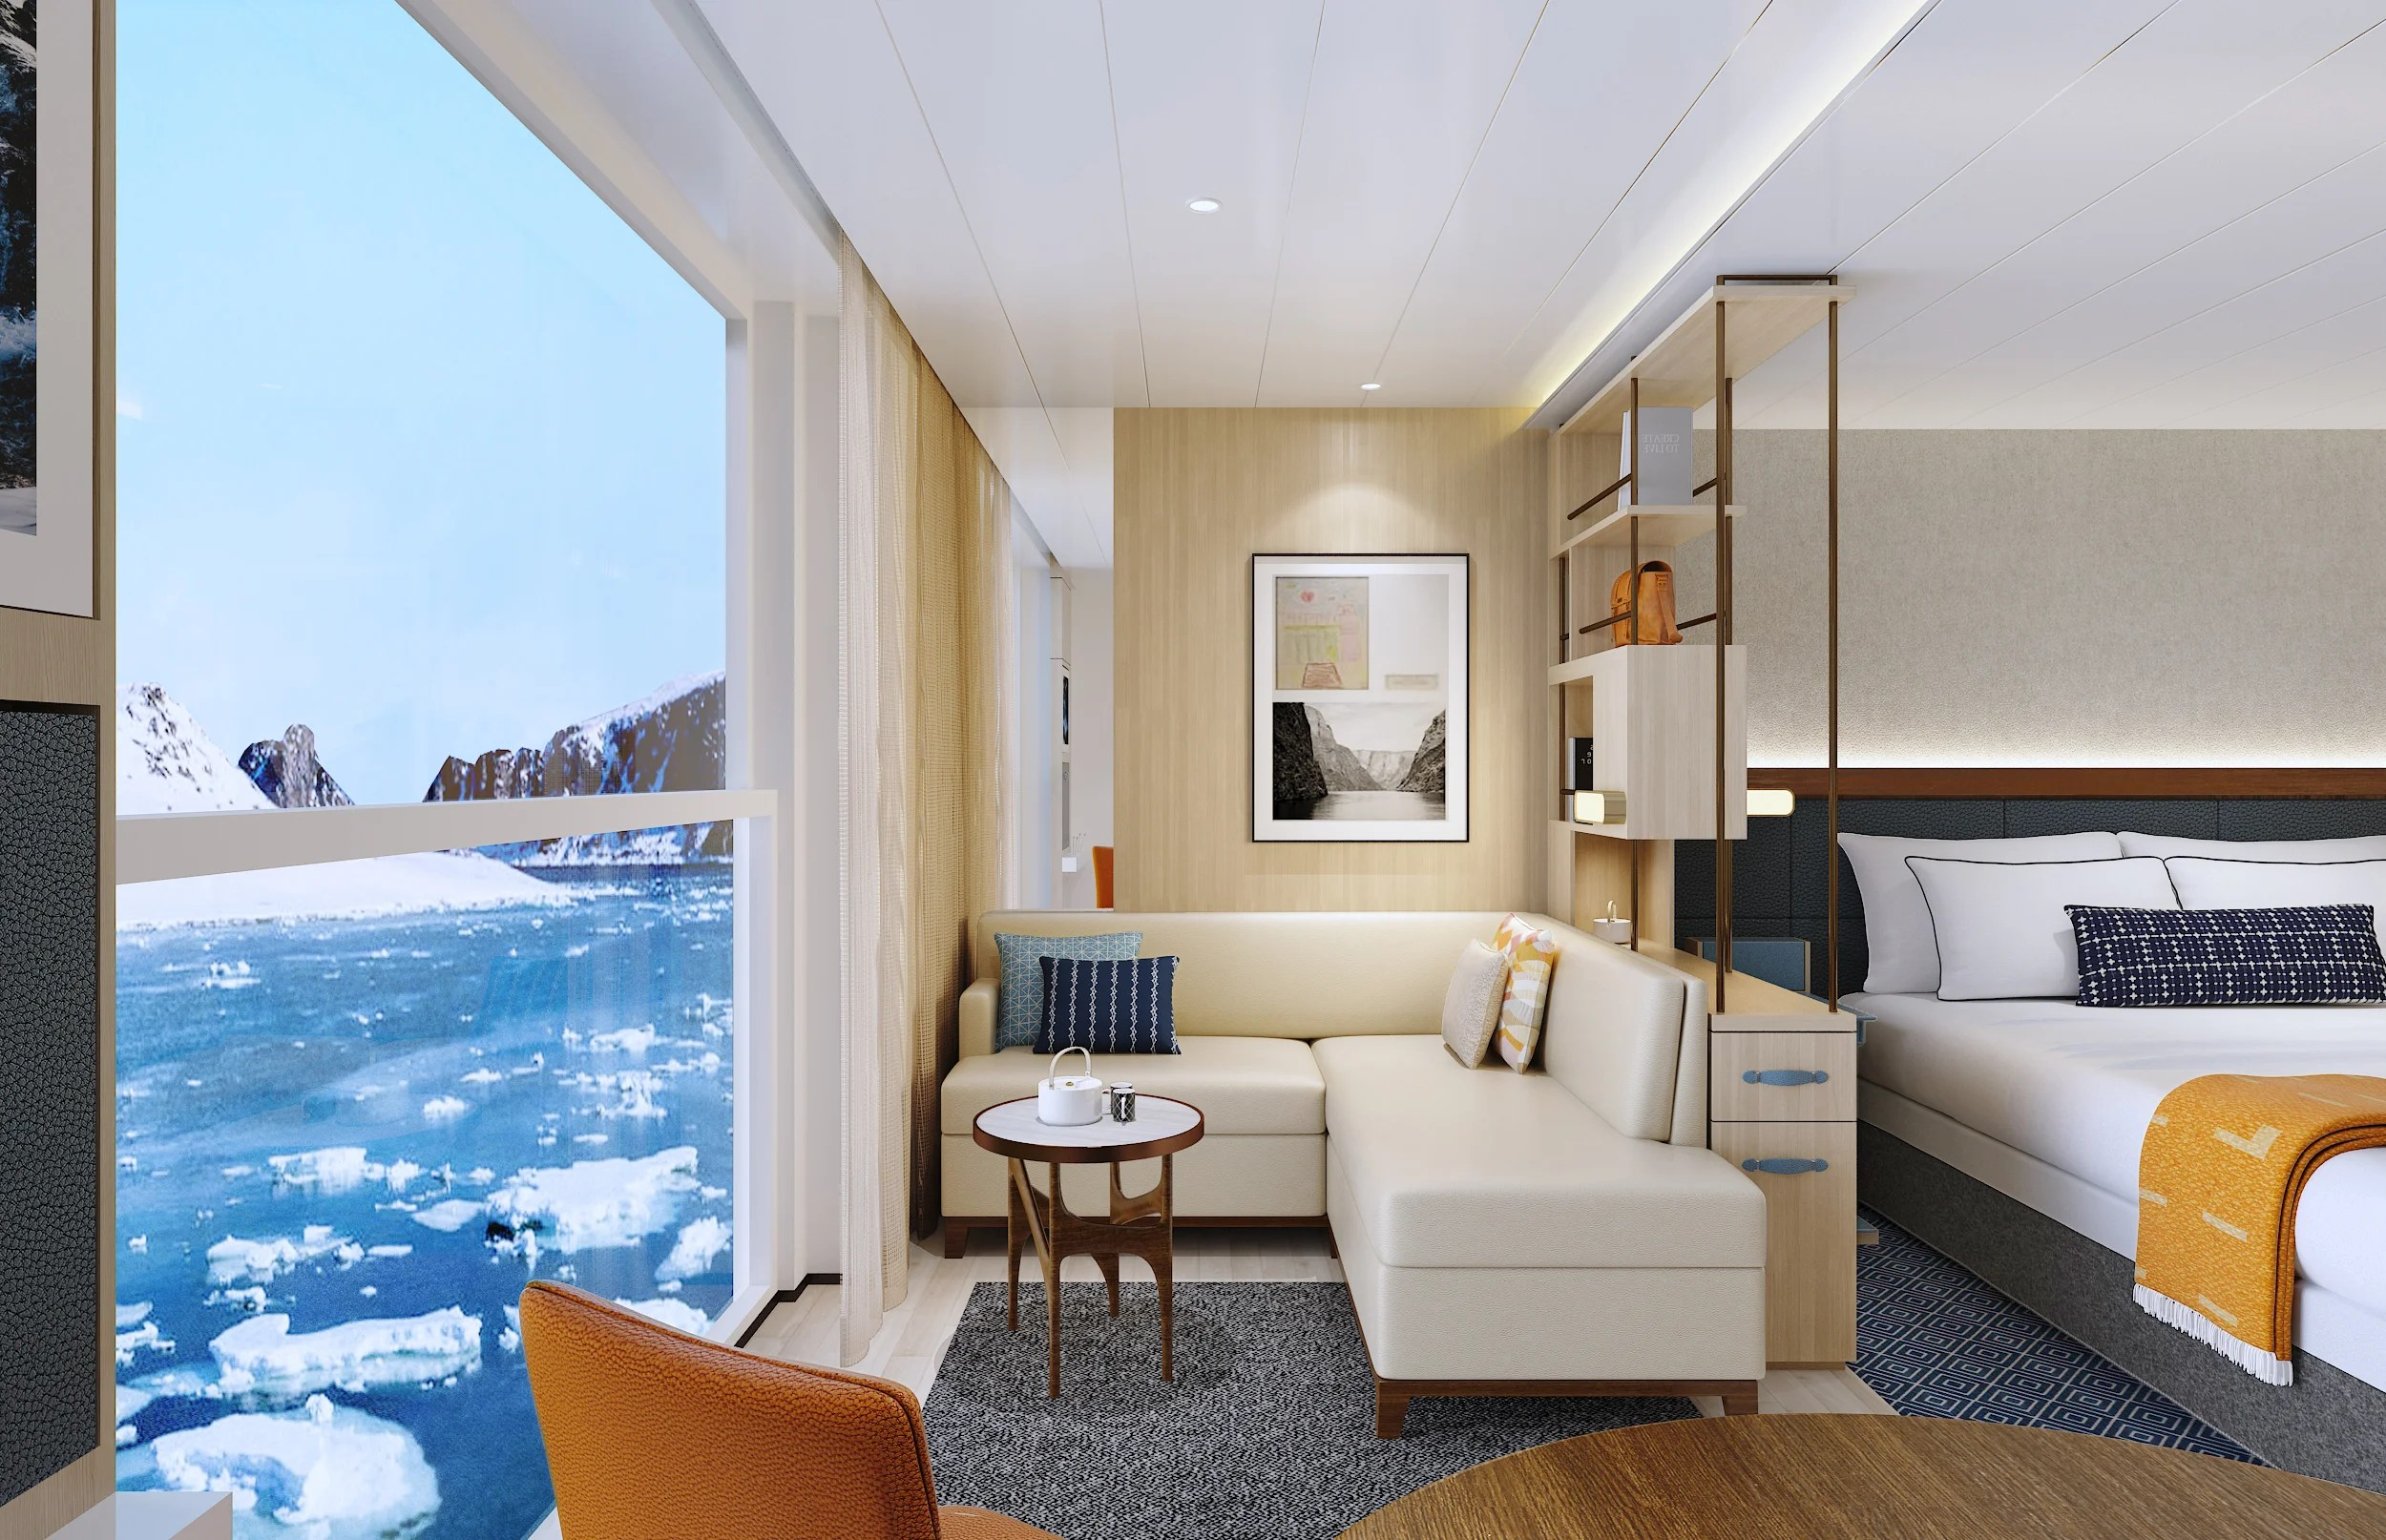 Viking's new expedition ships will have six categories of cabins including 322-square-foot junior suites (shown here). Image courtesy of Viking.